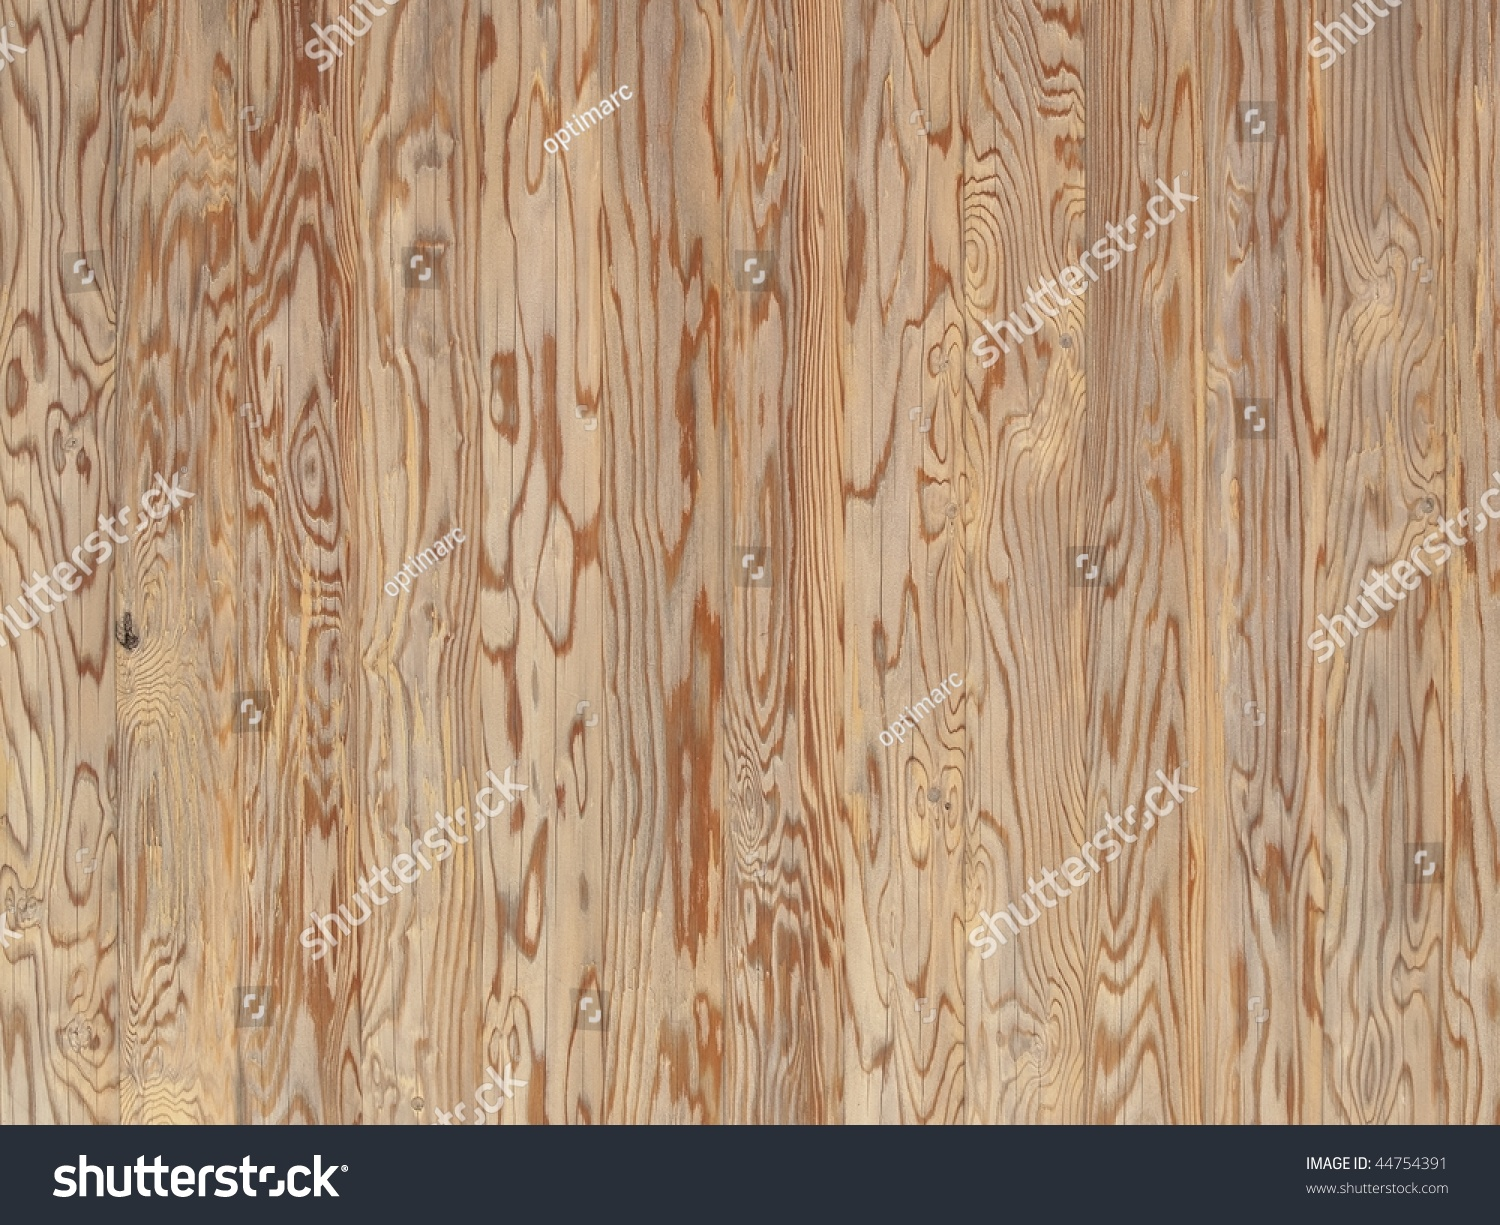 Asian spruce (tsuga) wood paneling texture with magnificent wood grain - Asian Spruce Tsuga Wood Paneling Texture Stock Photo 44754391